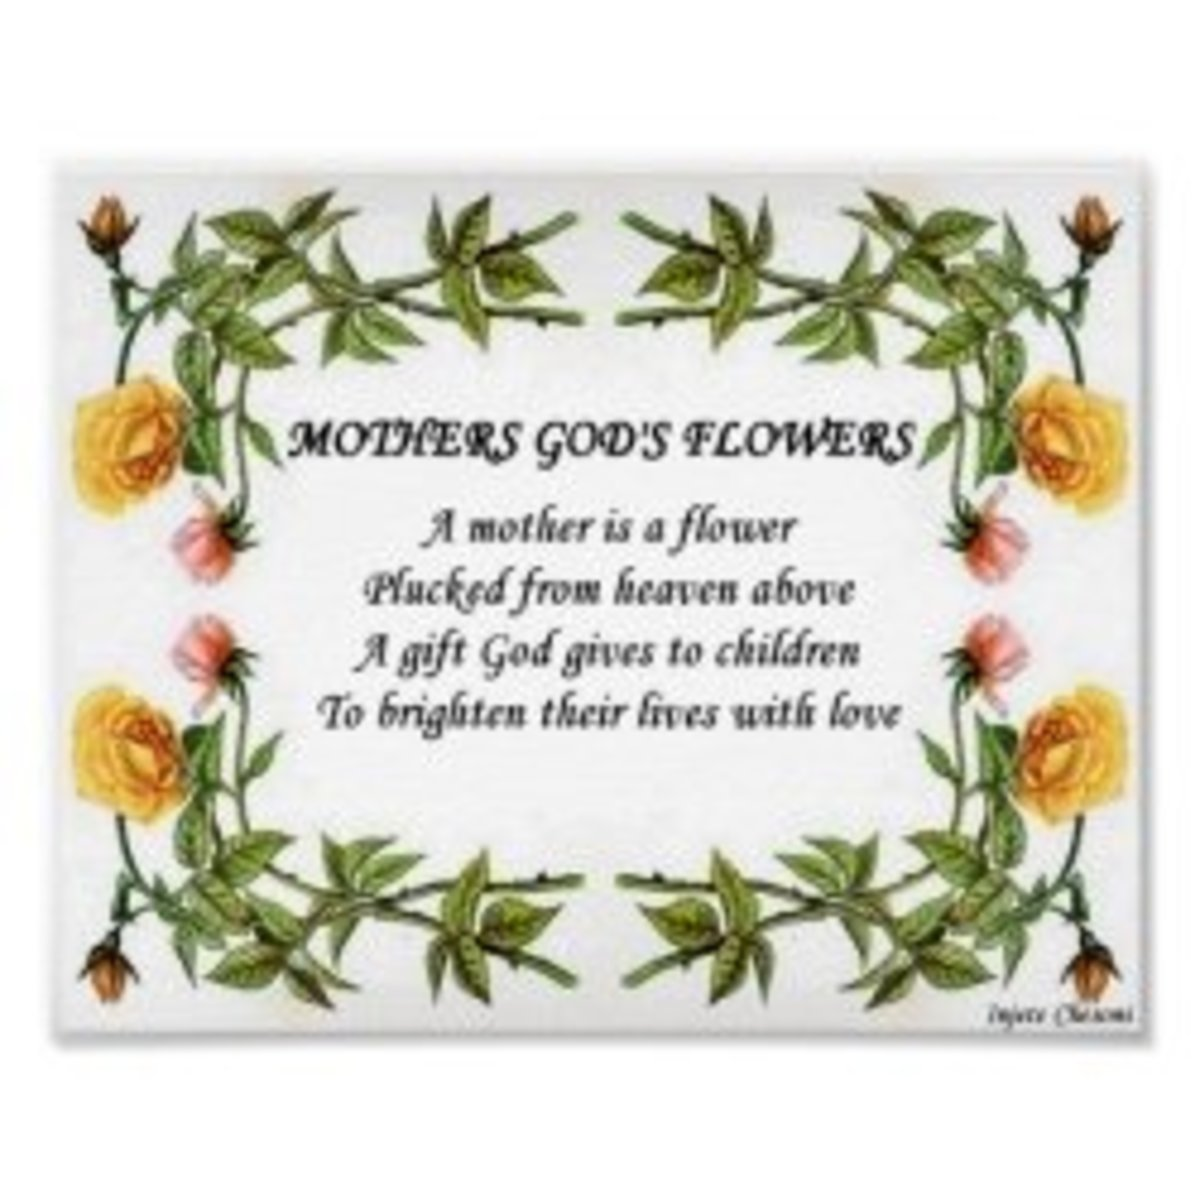 Mothers Gods Flowers Poster by Injete